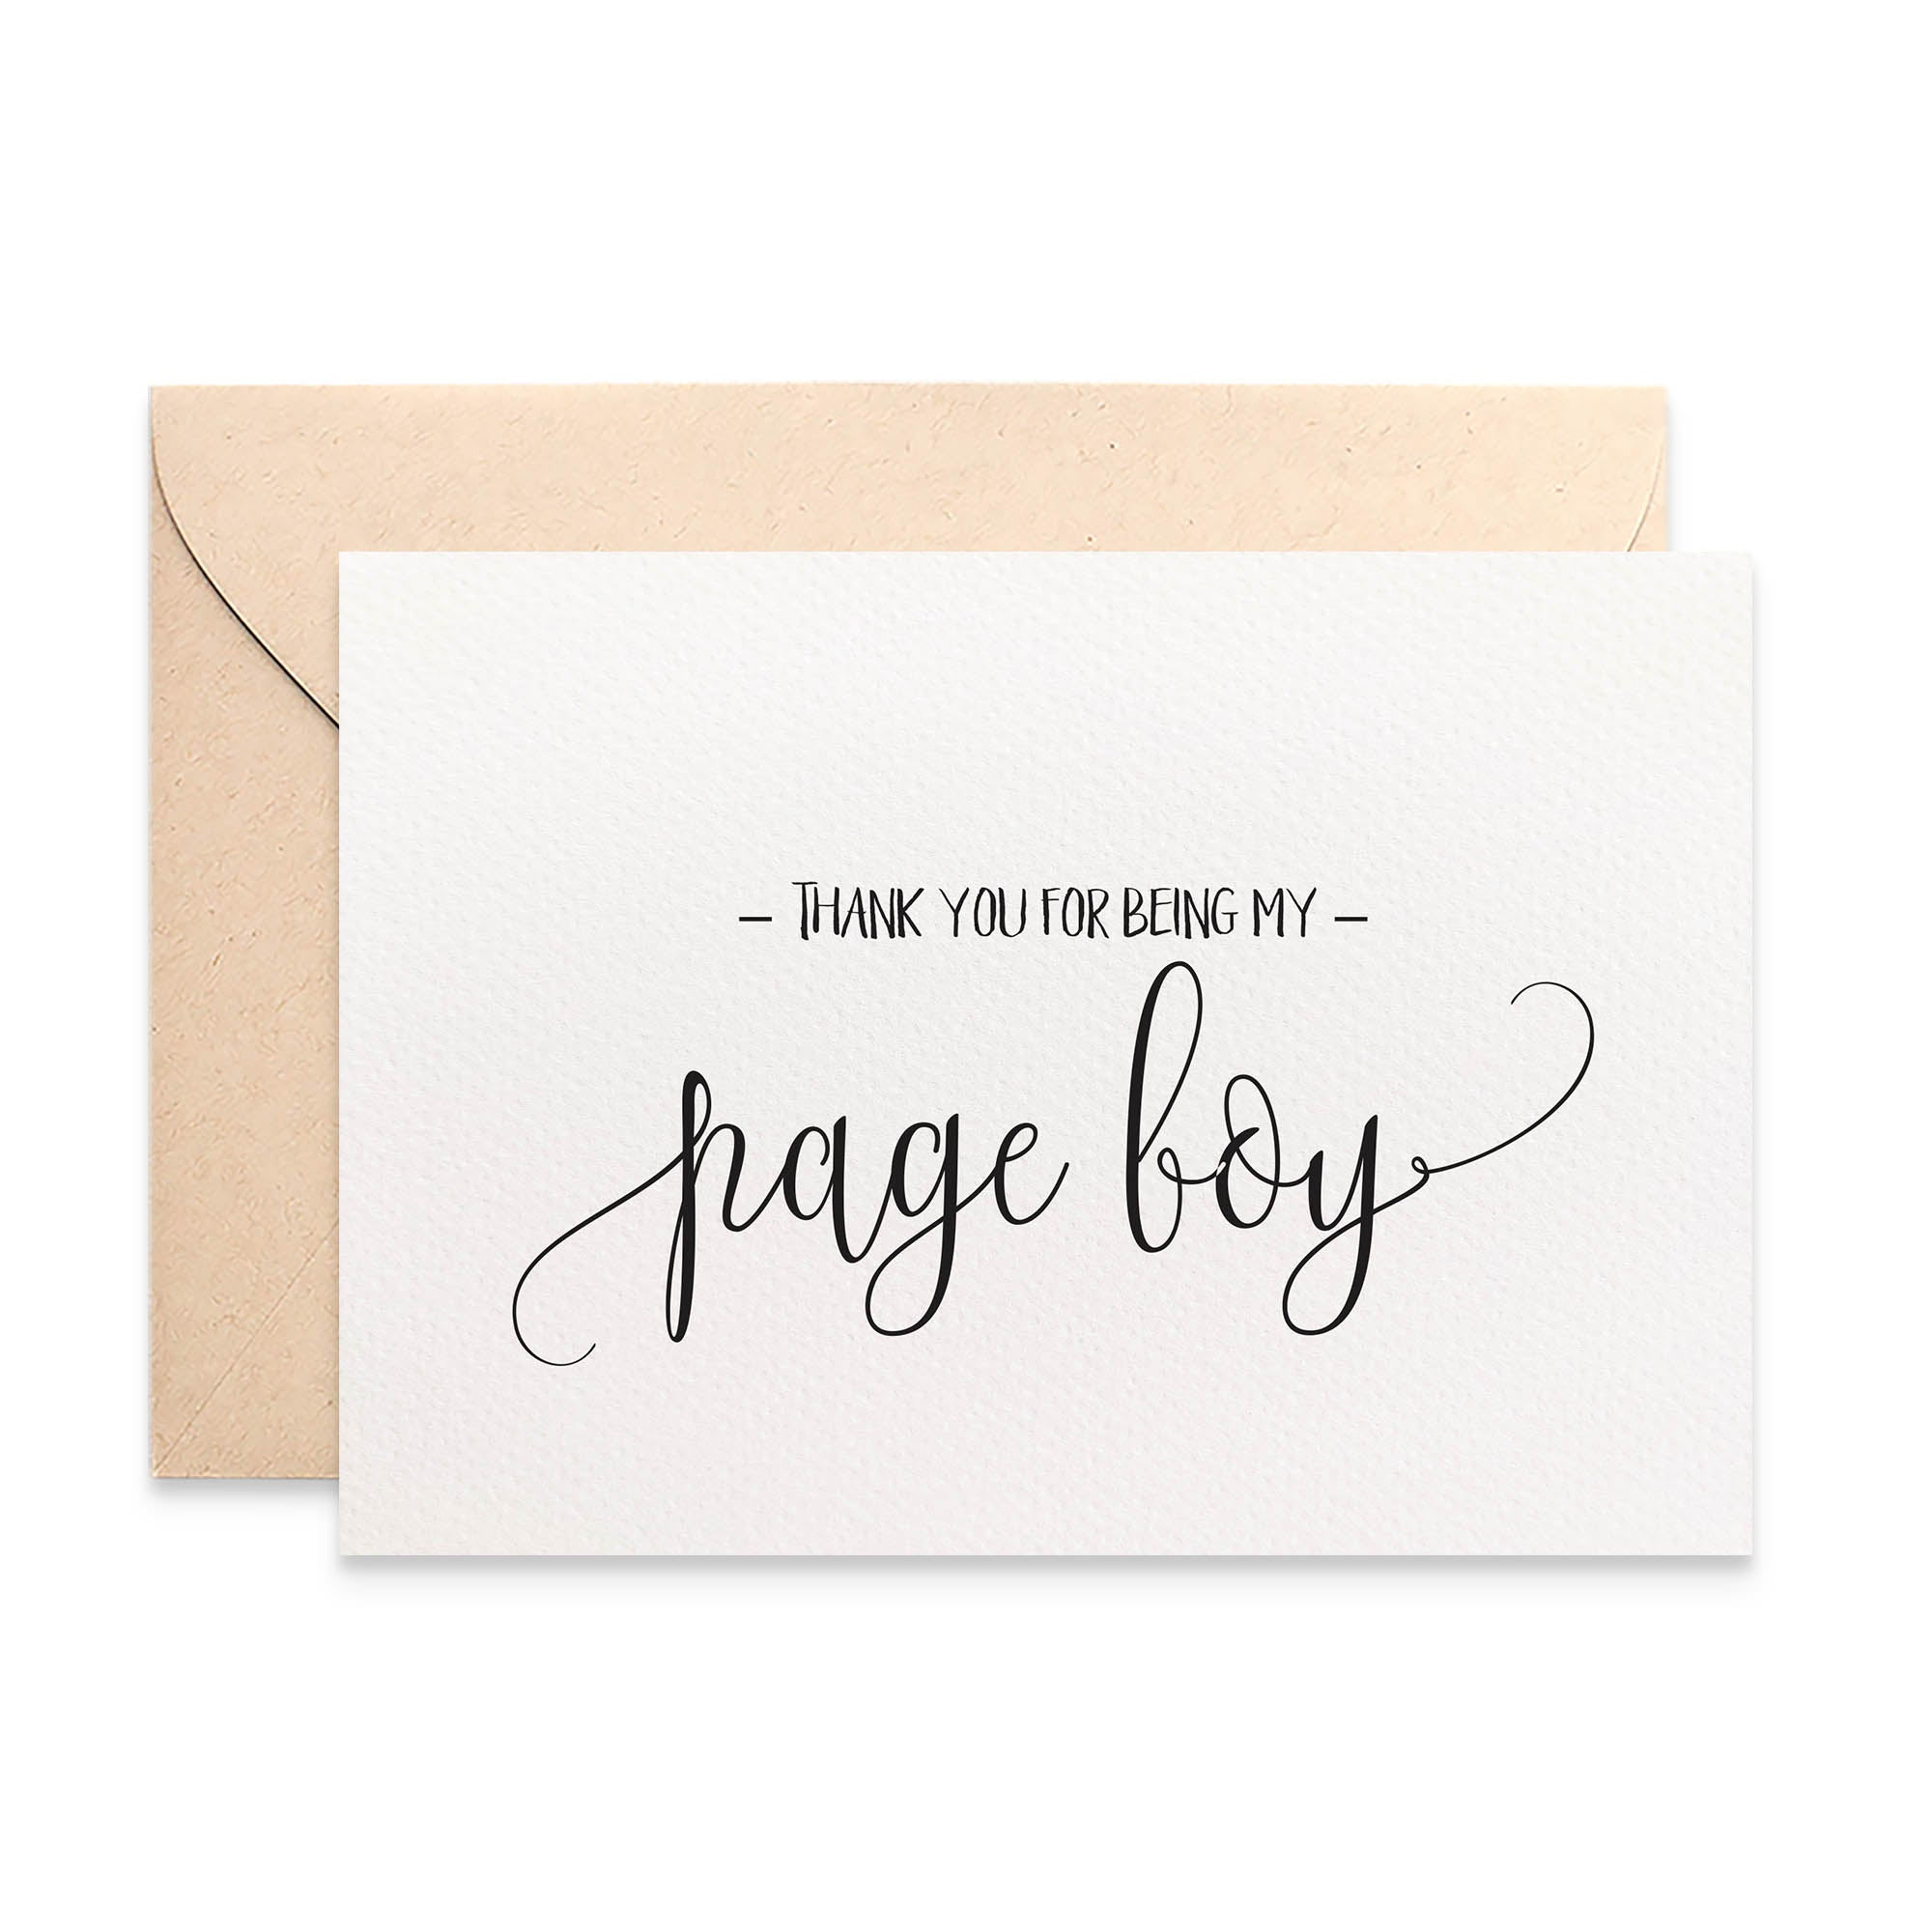 Thank you Page Boy Script Greeting Card by mumandmehandmadedesigns- An Australian Online Stationery and Card Shop